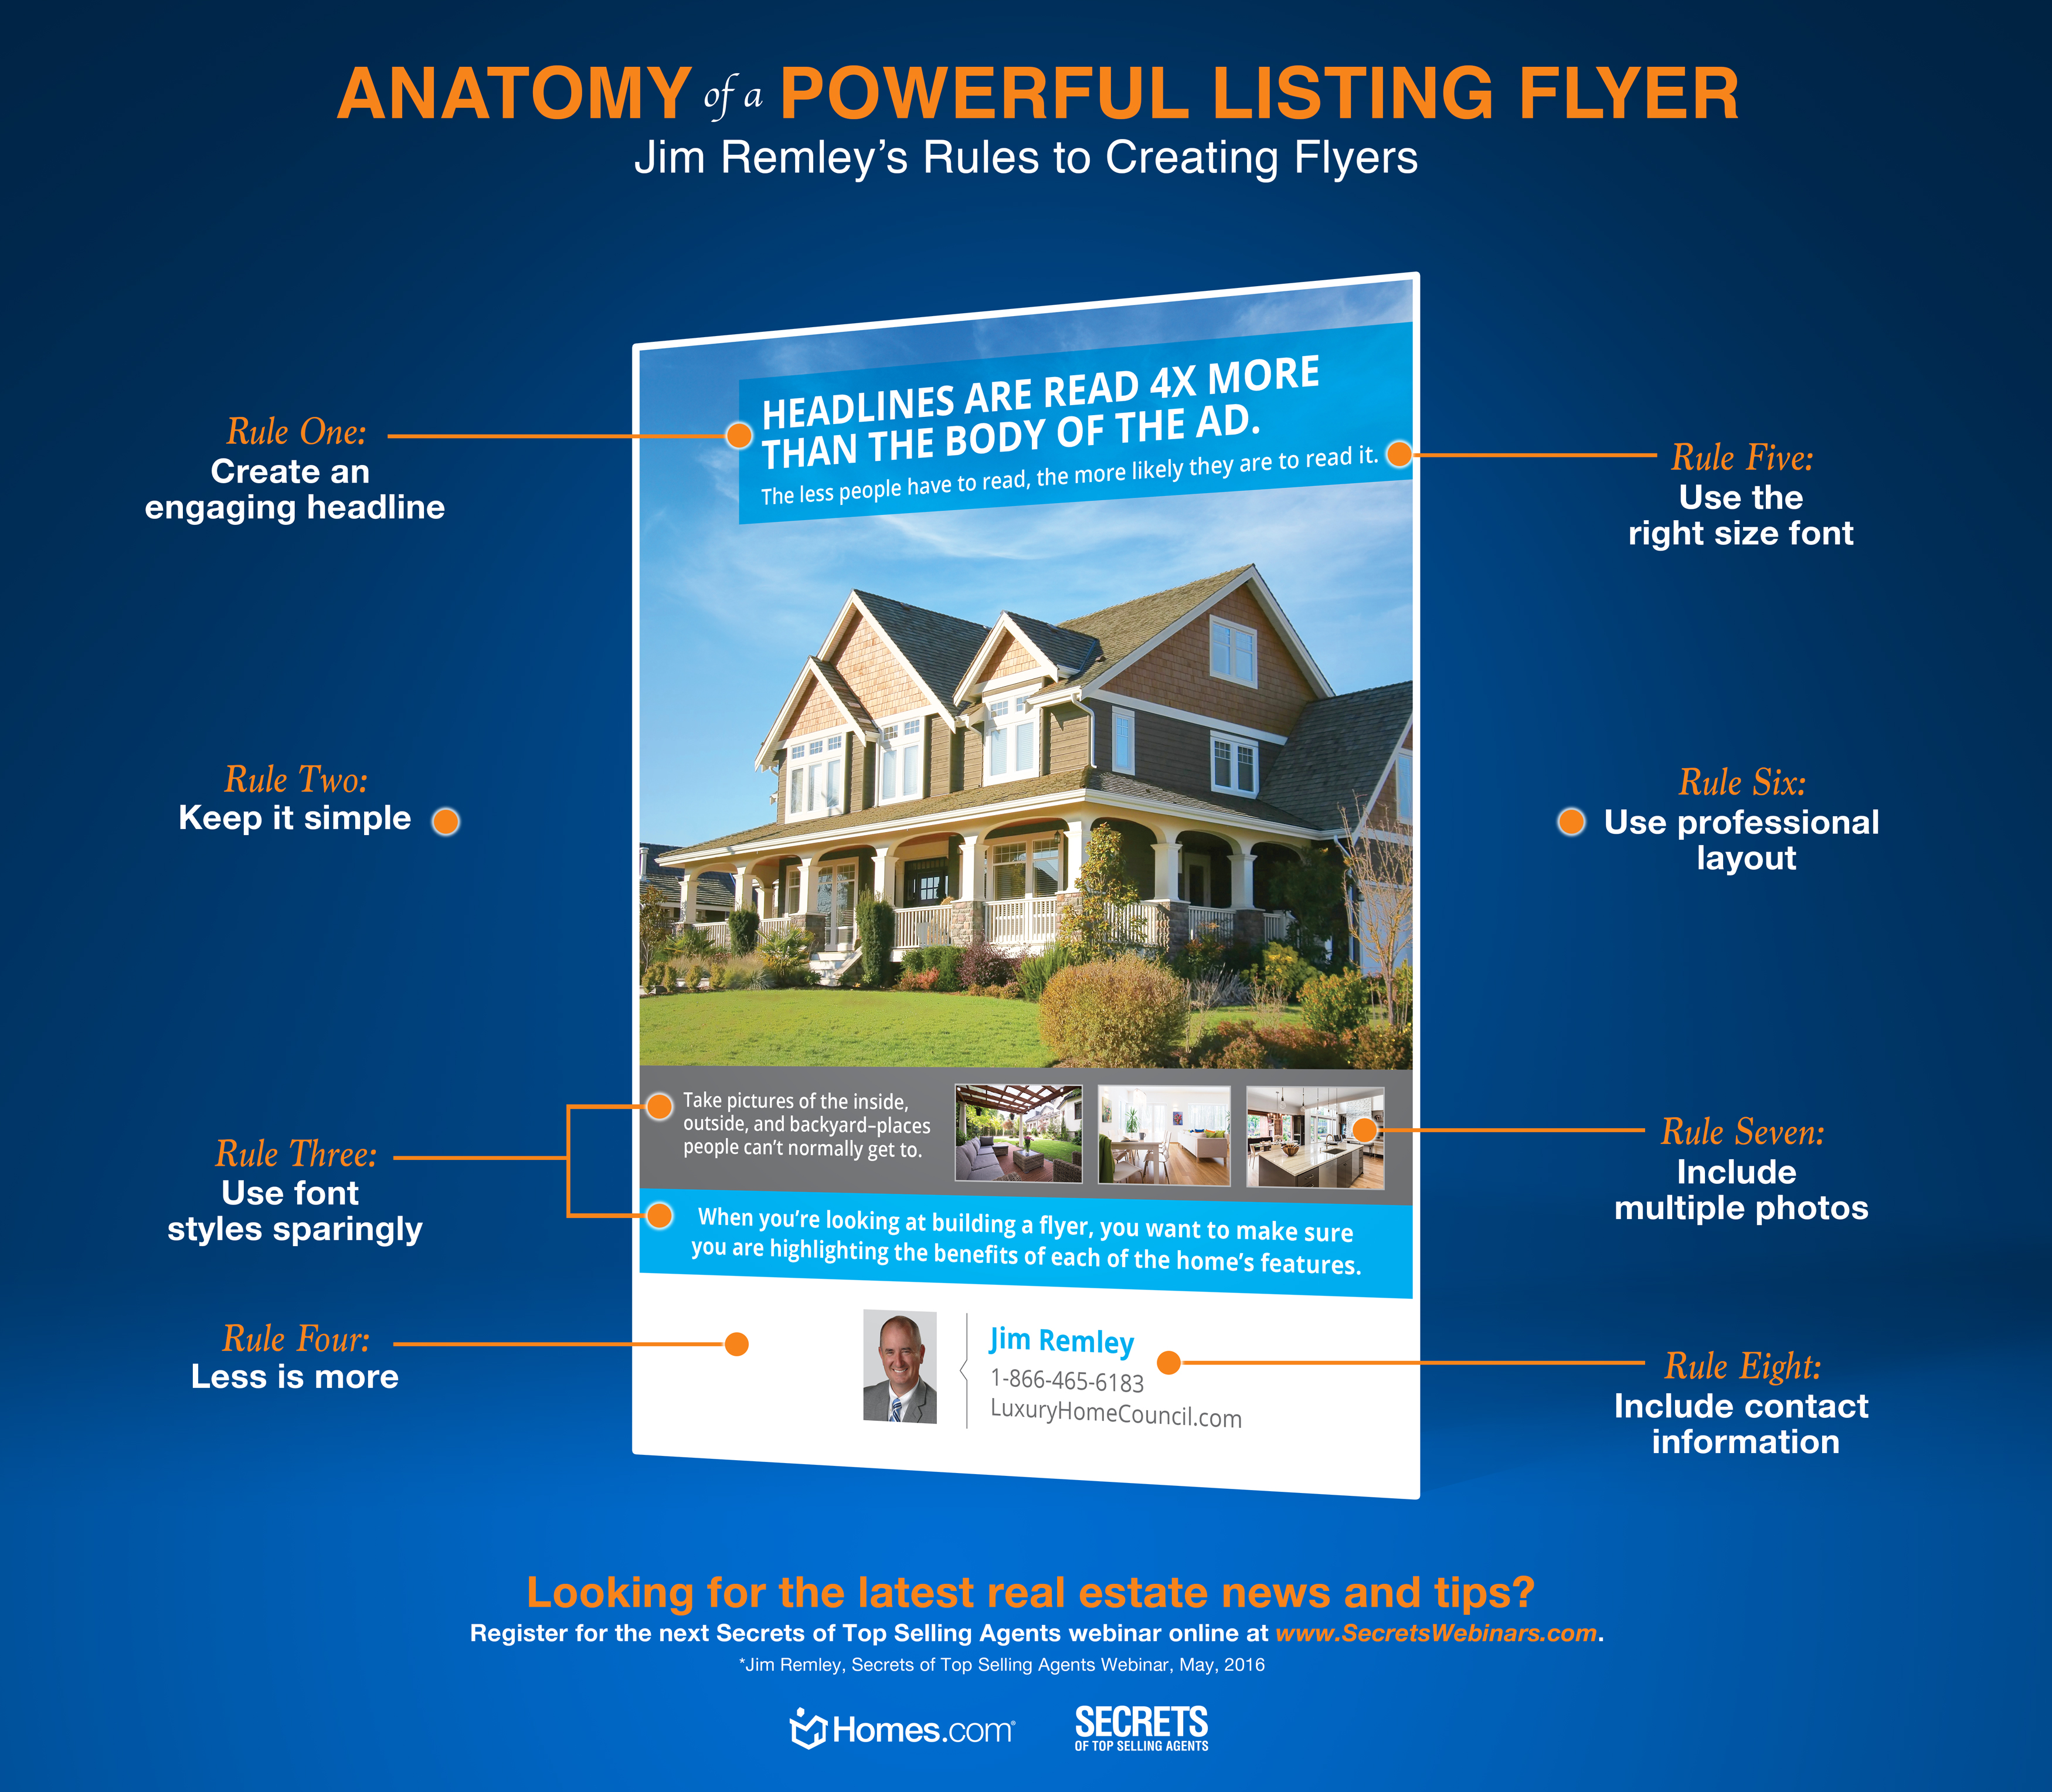 HDC-Remley-Anatomy-of-a-Flyer-Infographic-2506-v2